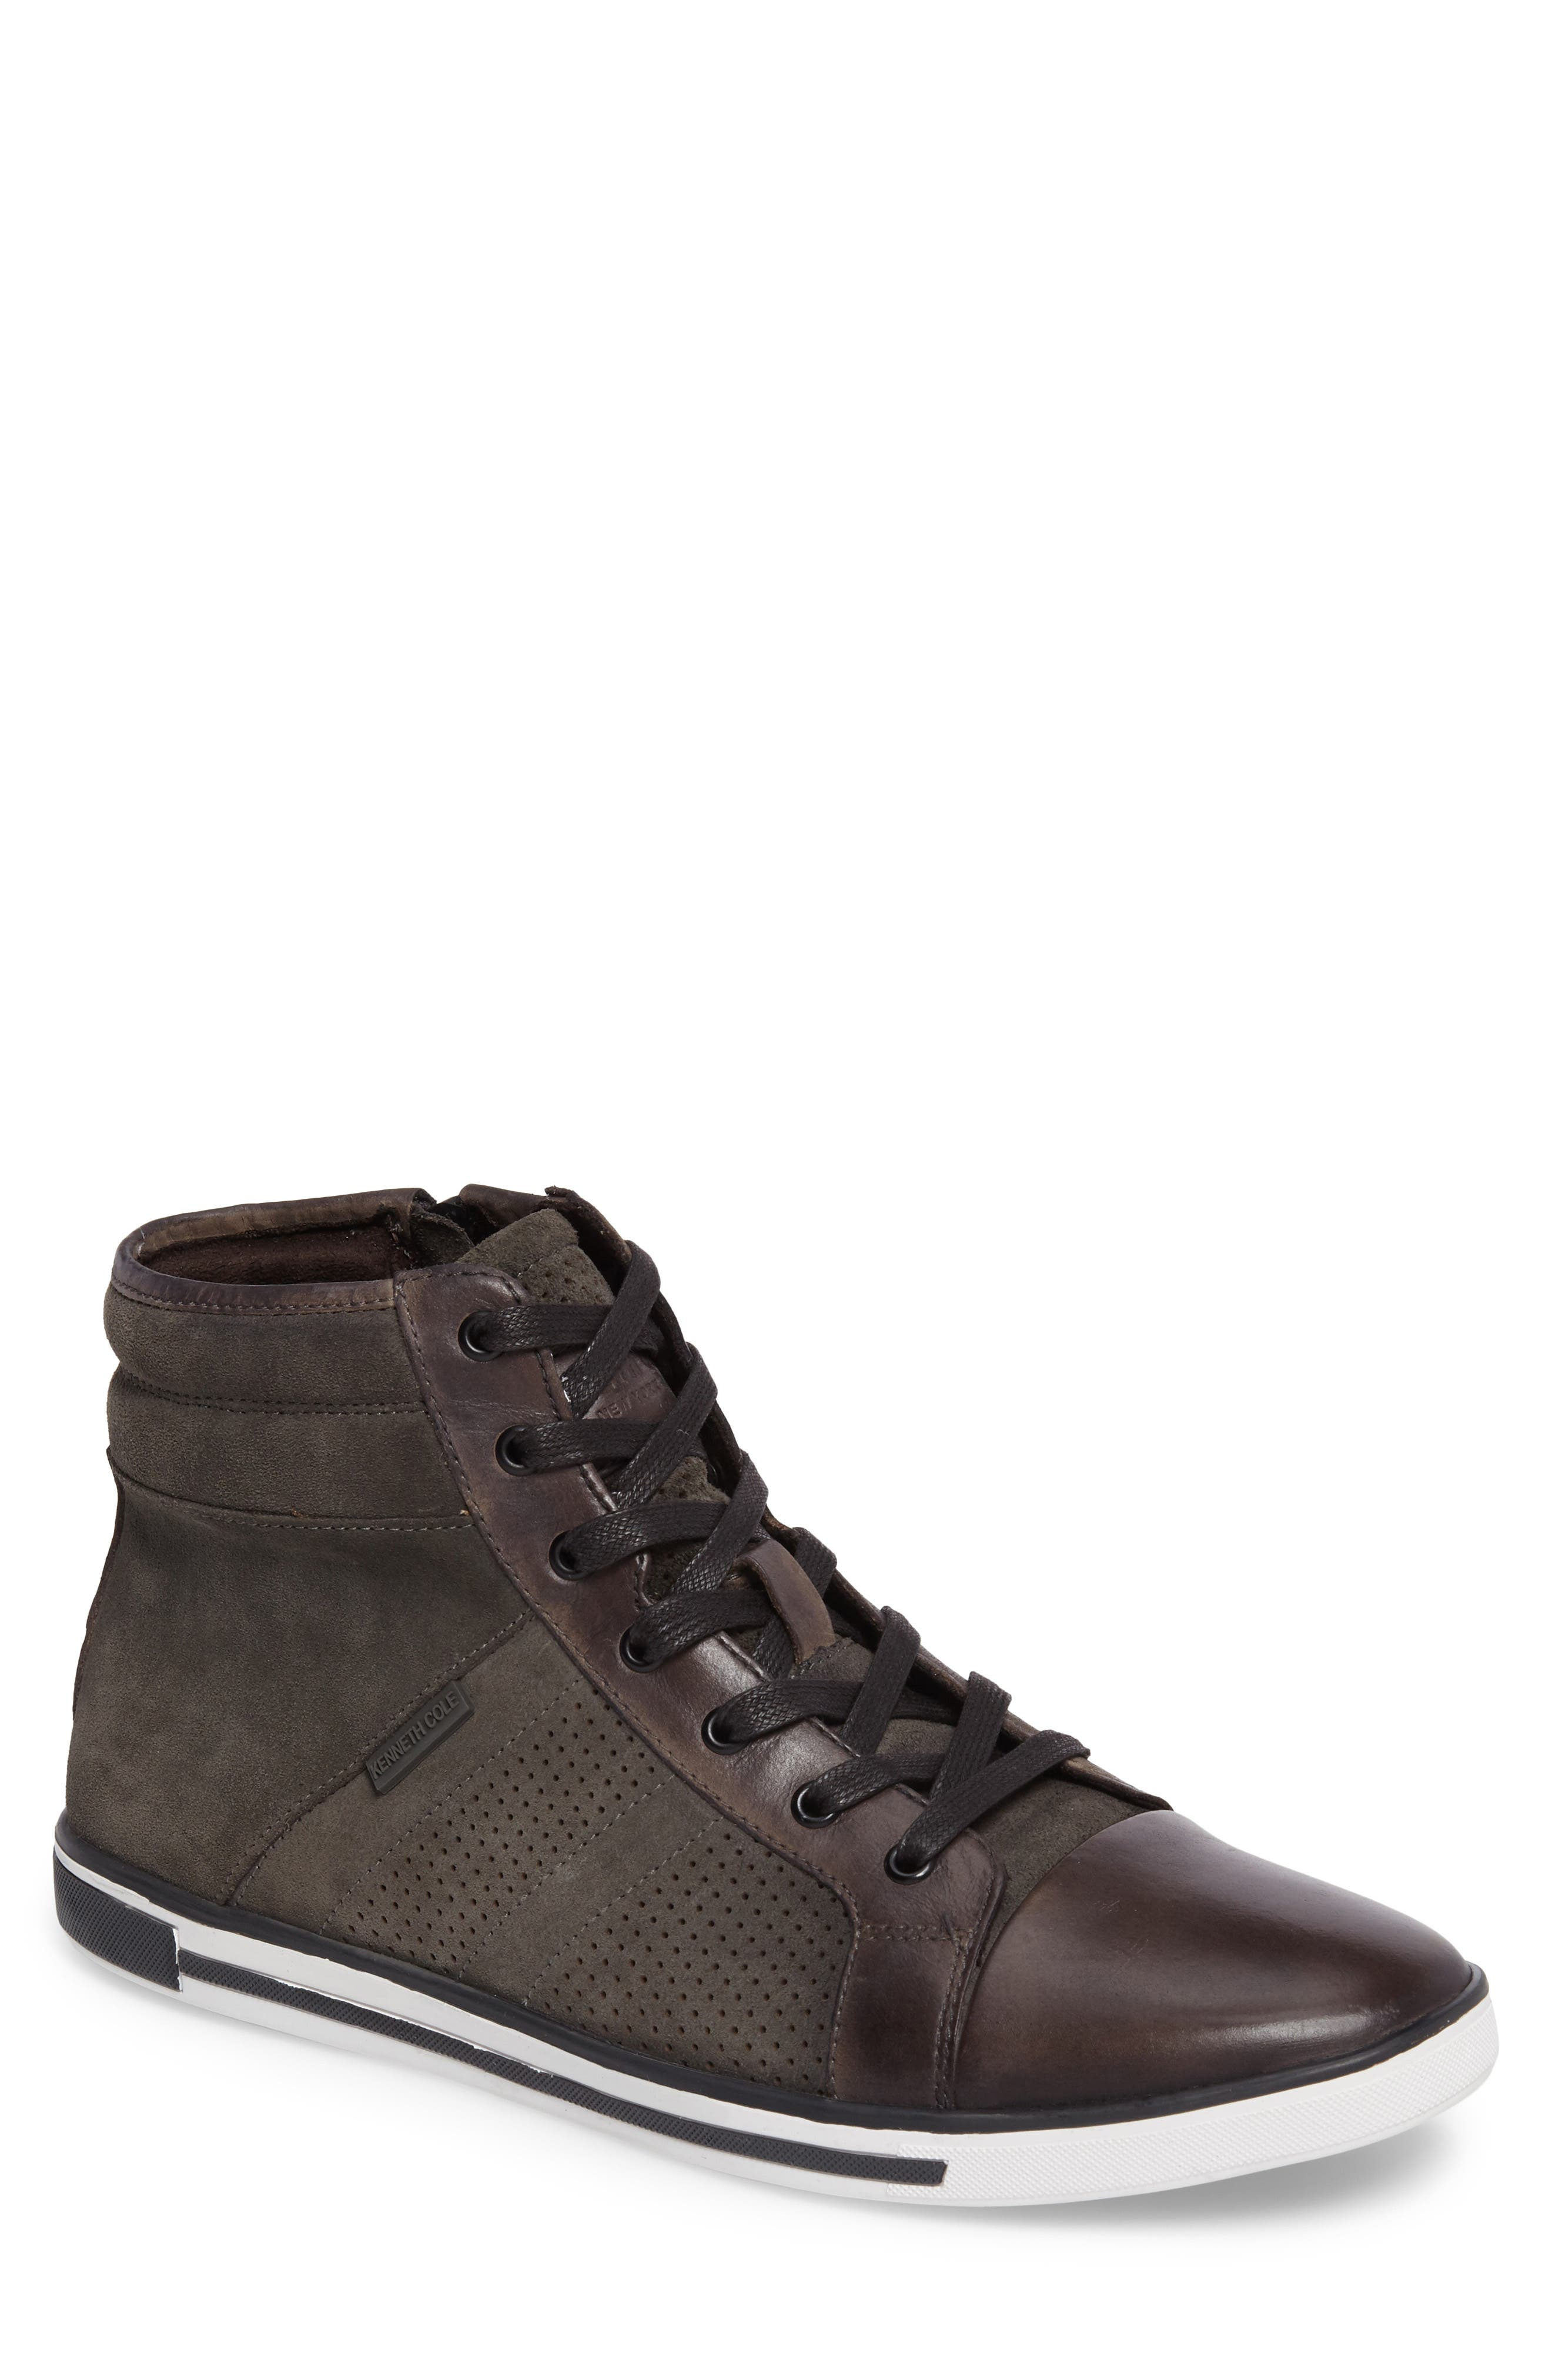 Initial Point Sneaker,                             Main thumbnail 1, color,